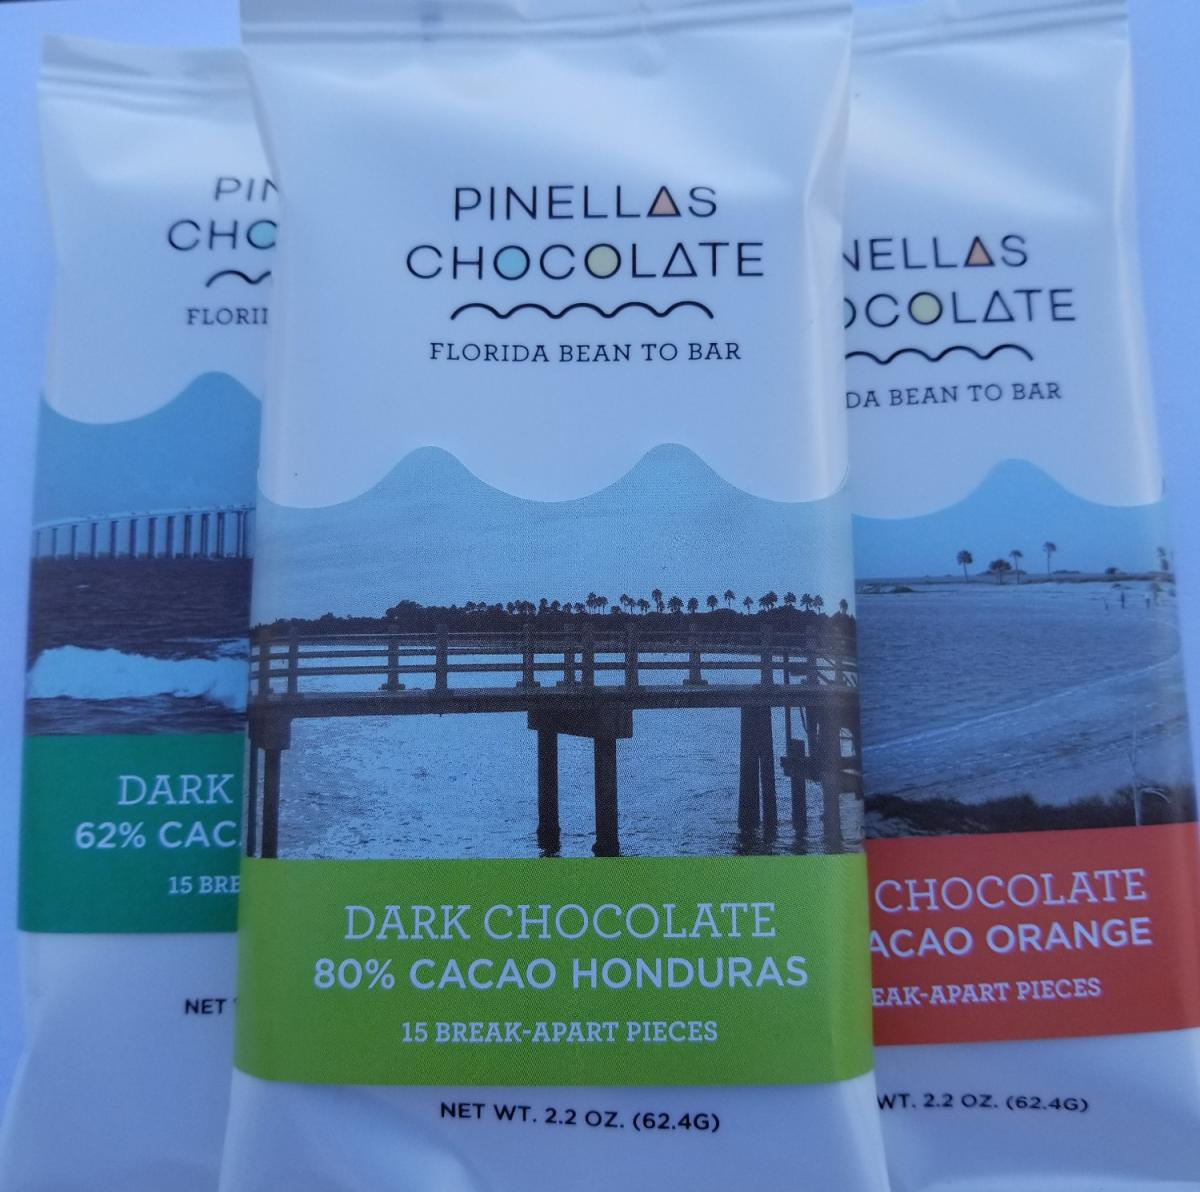 Pinellas Chocolate Company Creates Delicious Craft Chocolate in Largo